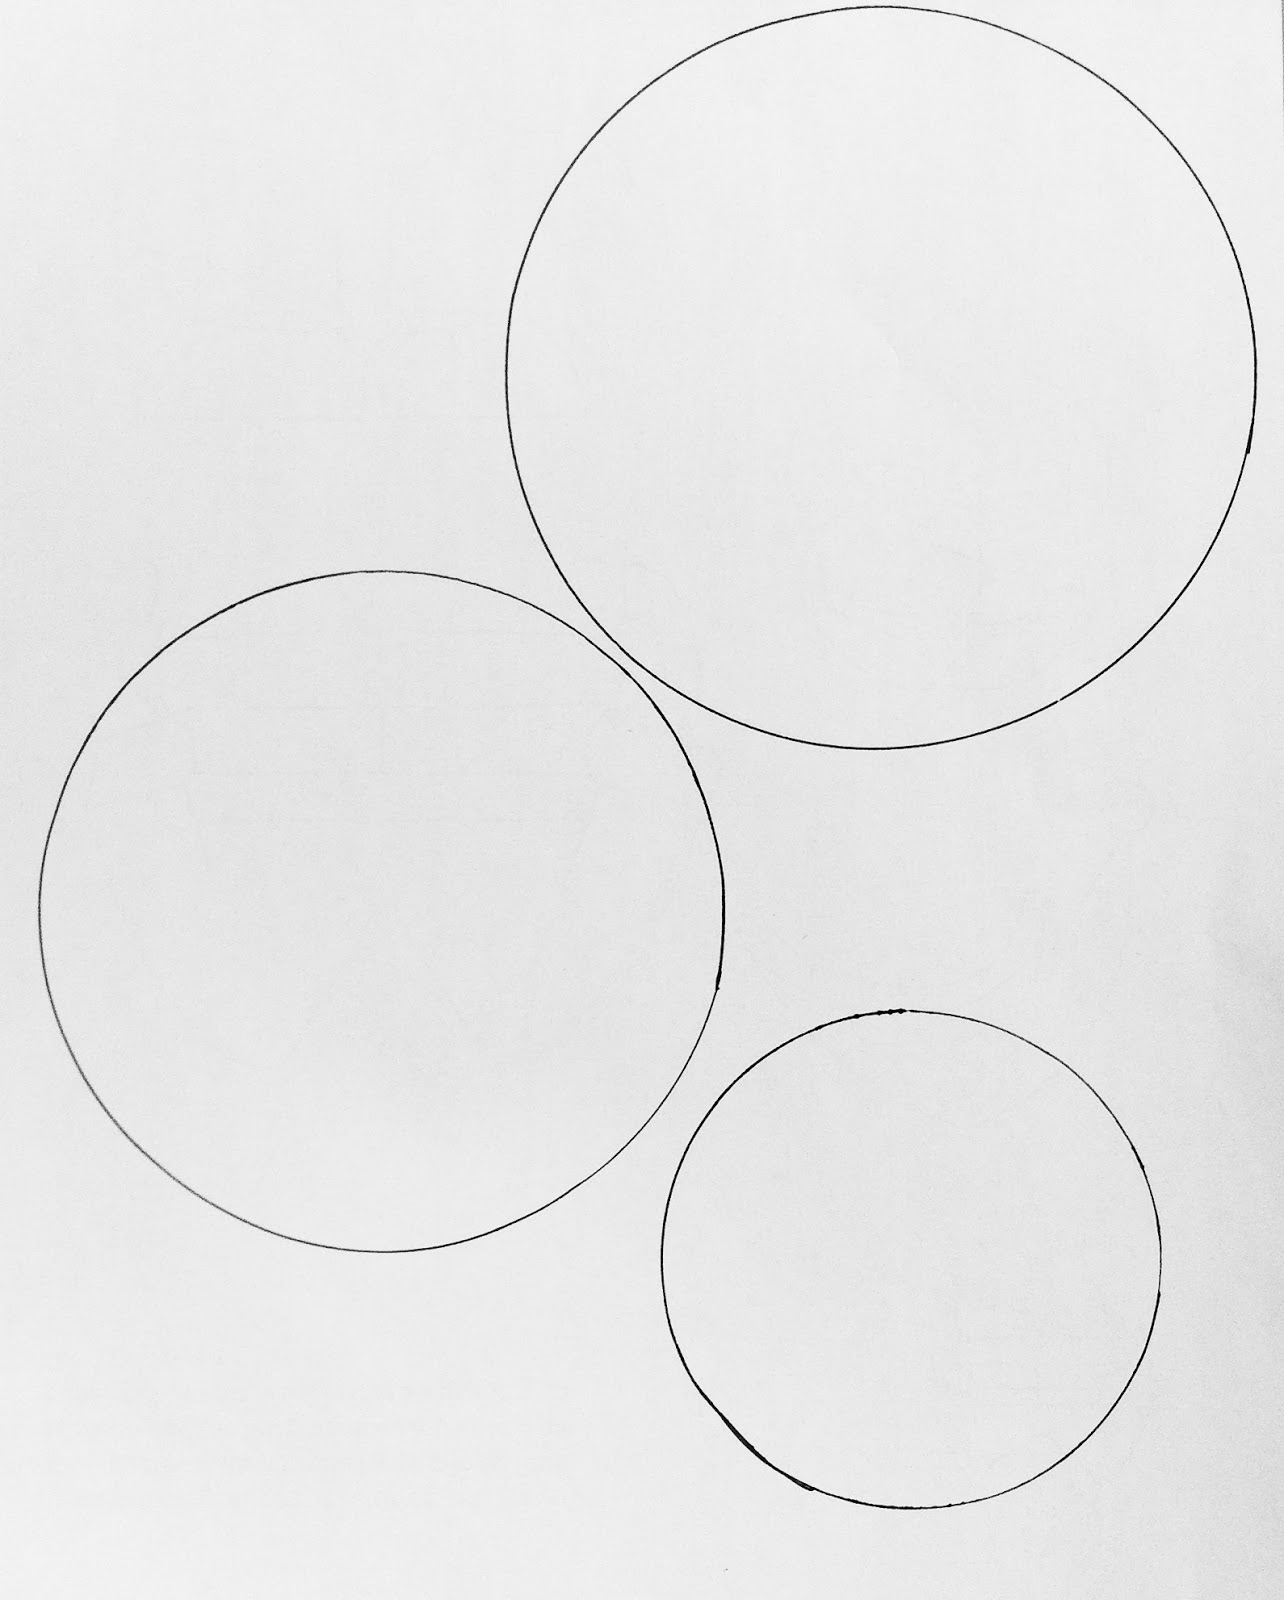 1284 x 1600 jpeg 130kB, Drew three circles and photocopied some for ...